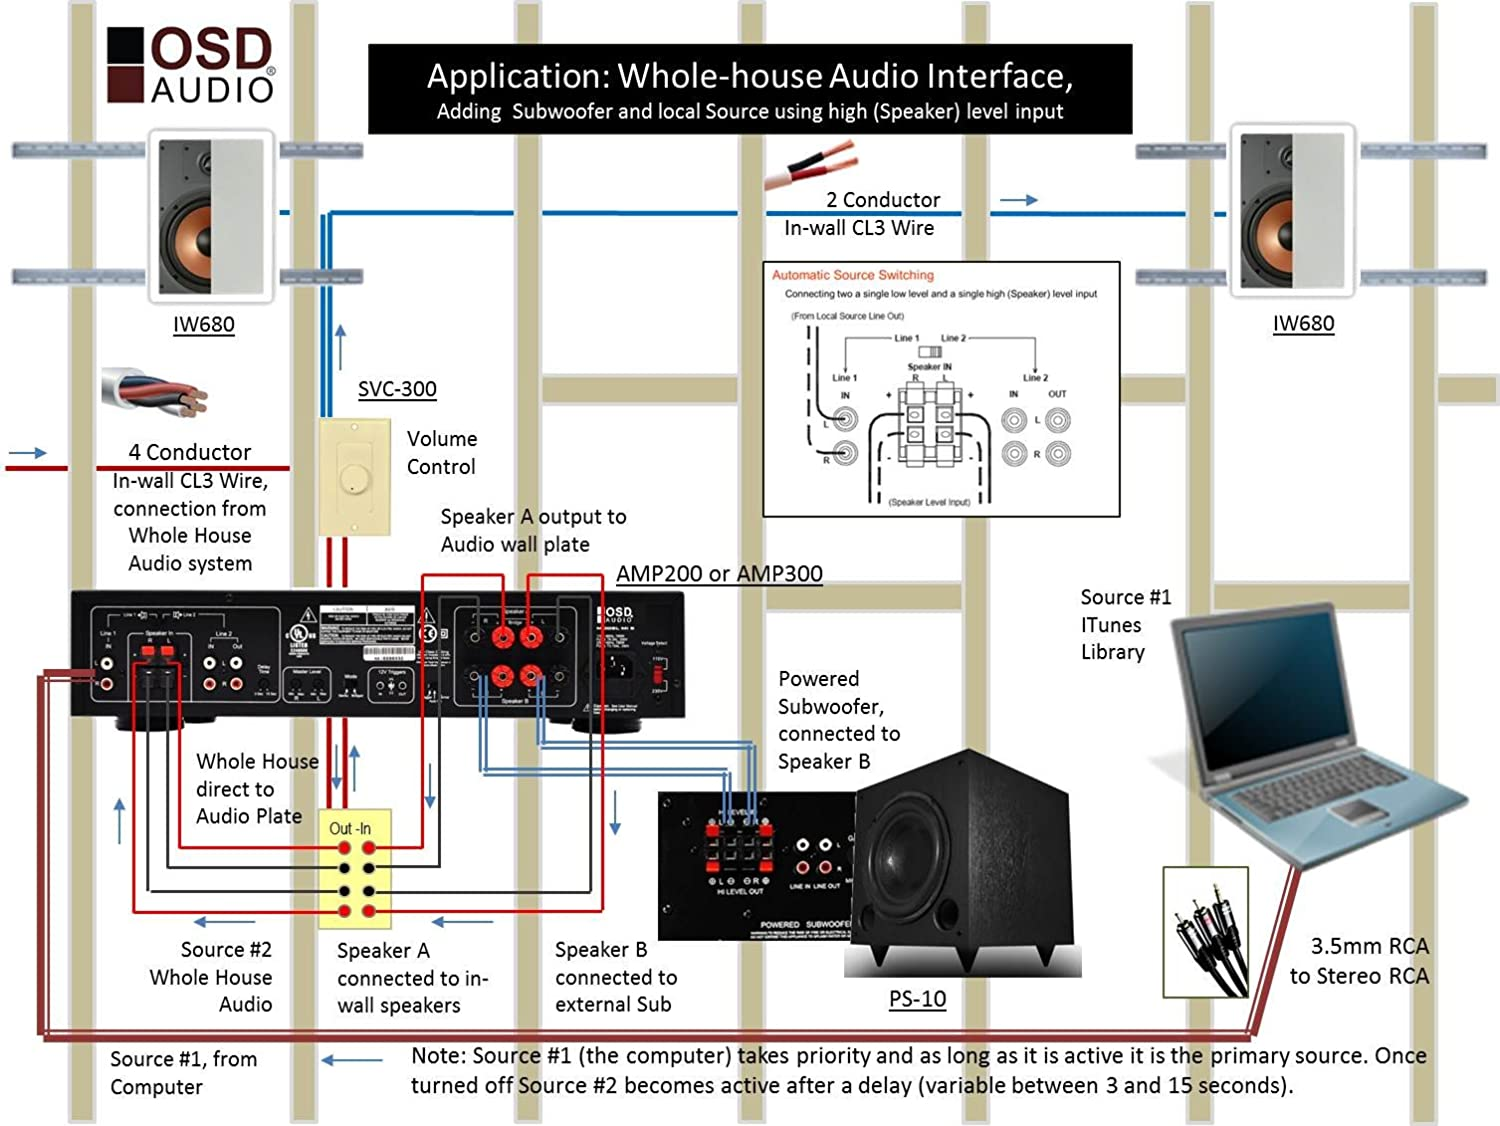 Osd Amp300 Class A B Toroidal Power High Current 2 Ohms Ohm Stable Wiring Diagram Schematic Stereo Bridgeable 350w Amplifier Dual Sourcing And Speaker Level Input Home